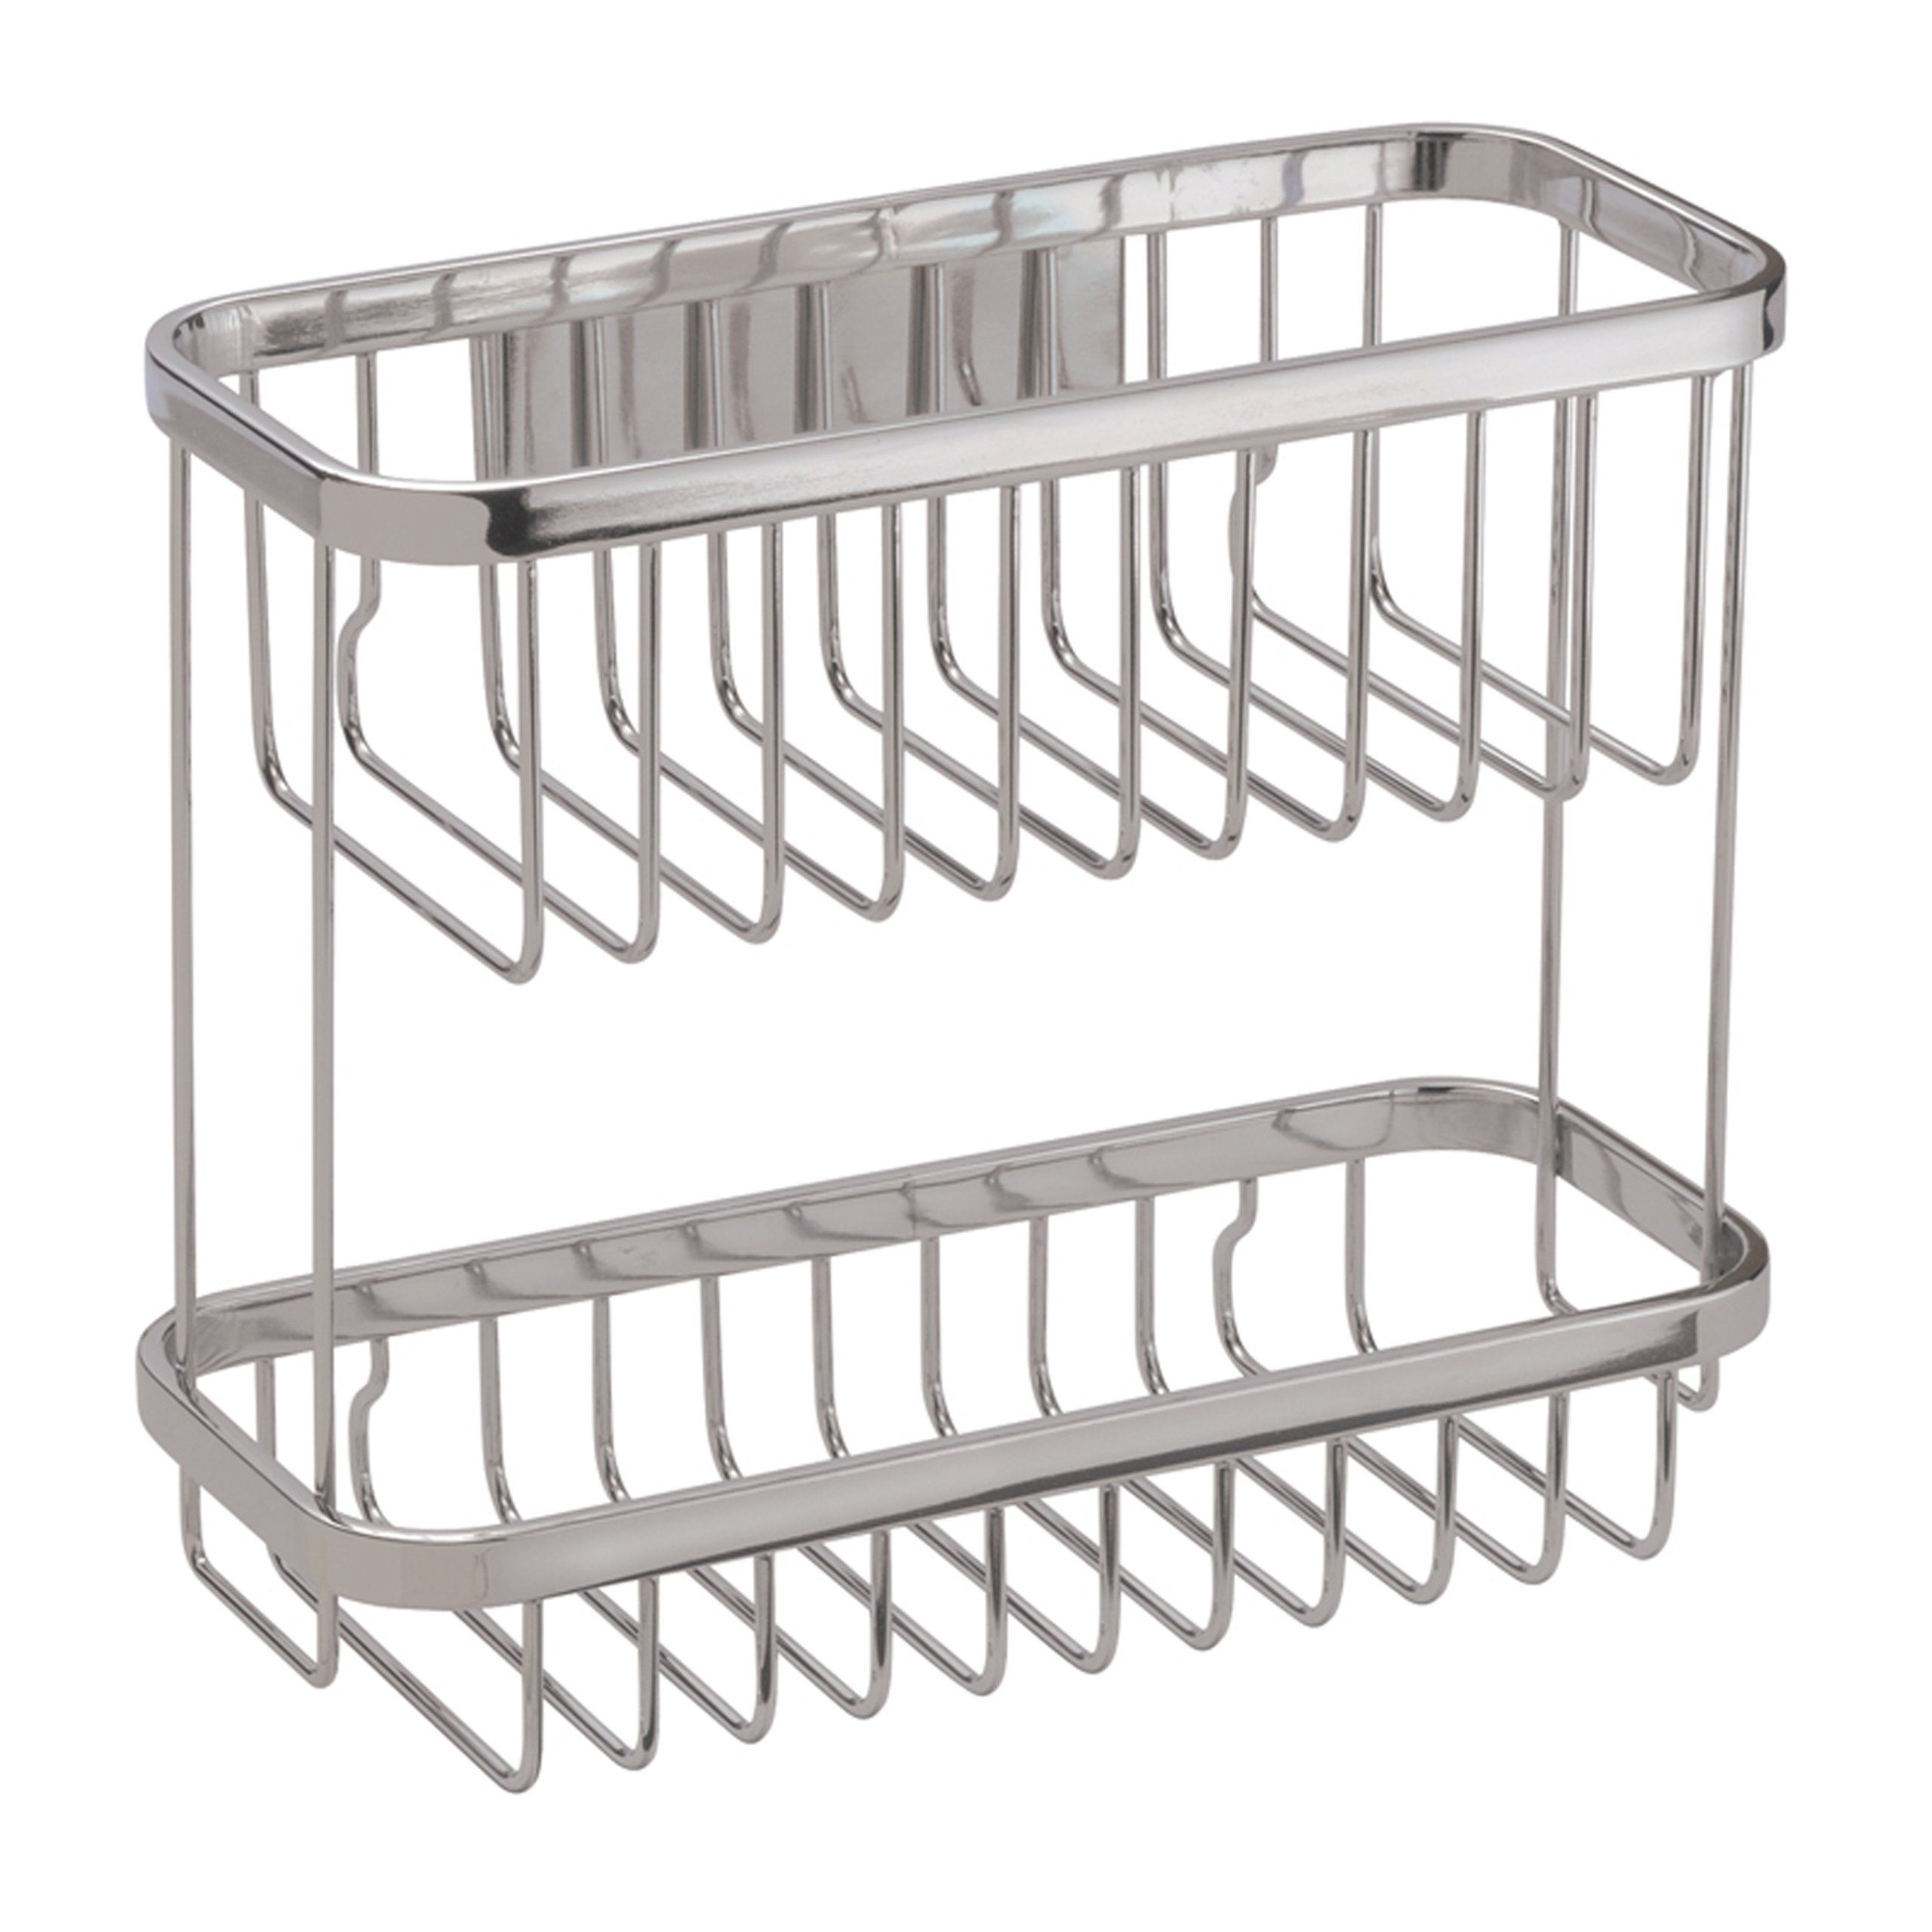 Heavy Duty Iron Kitchen Bathroom Shower Shelf Storage Basket Caddy Rack